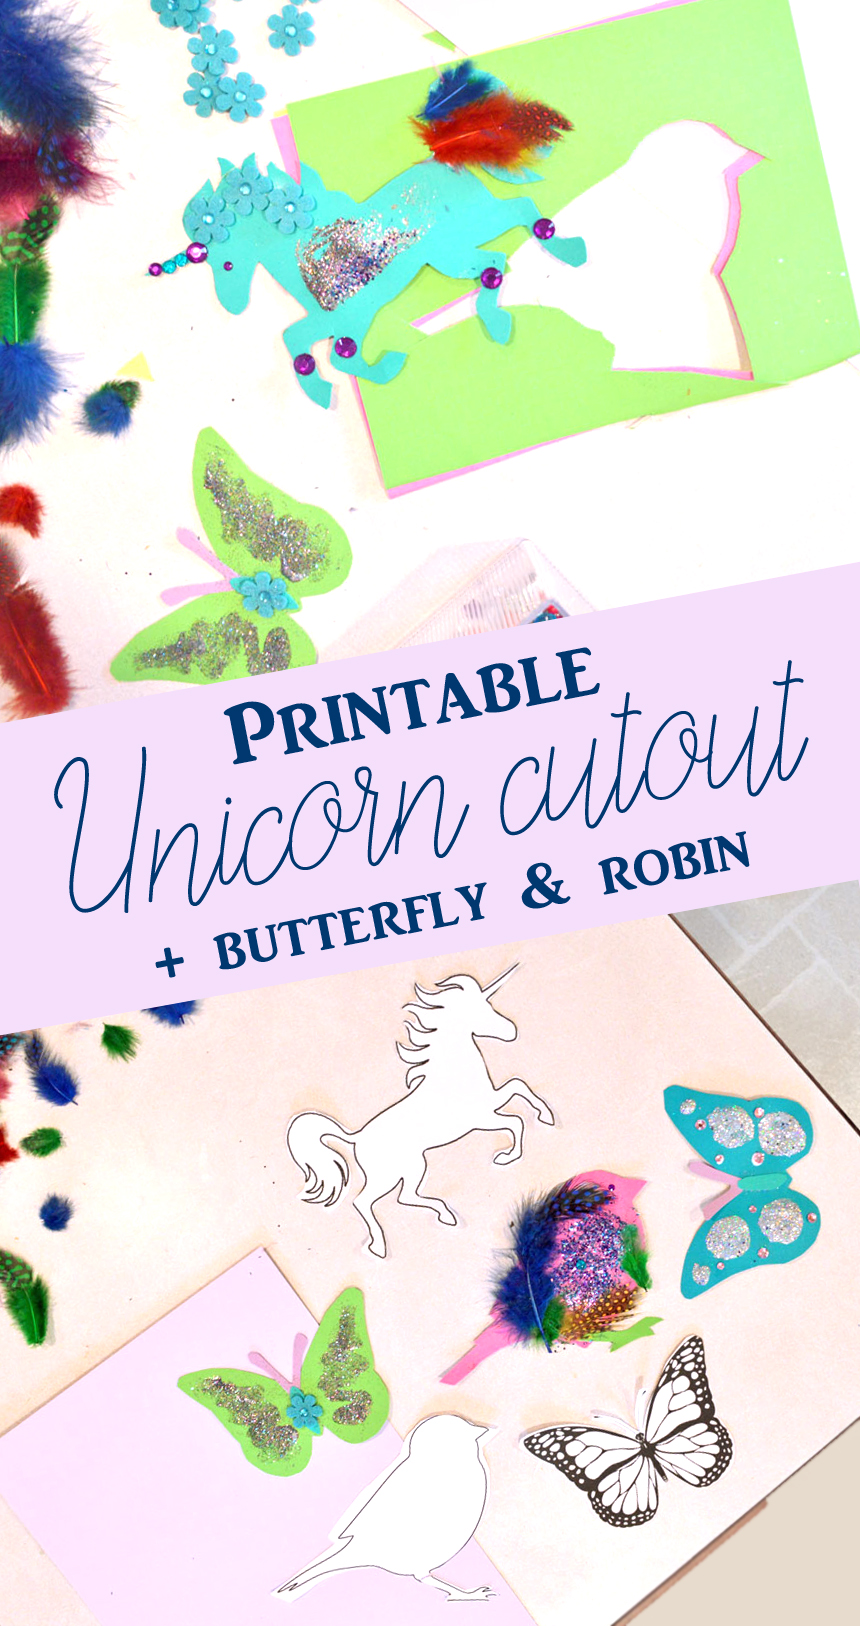 Printable unicorn, butterfly and robin cutout template kids craft